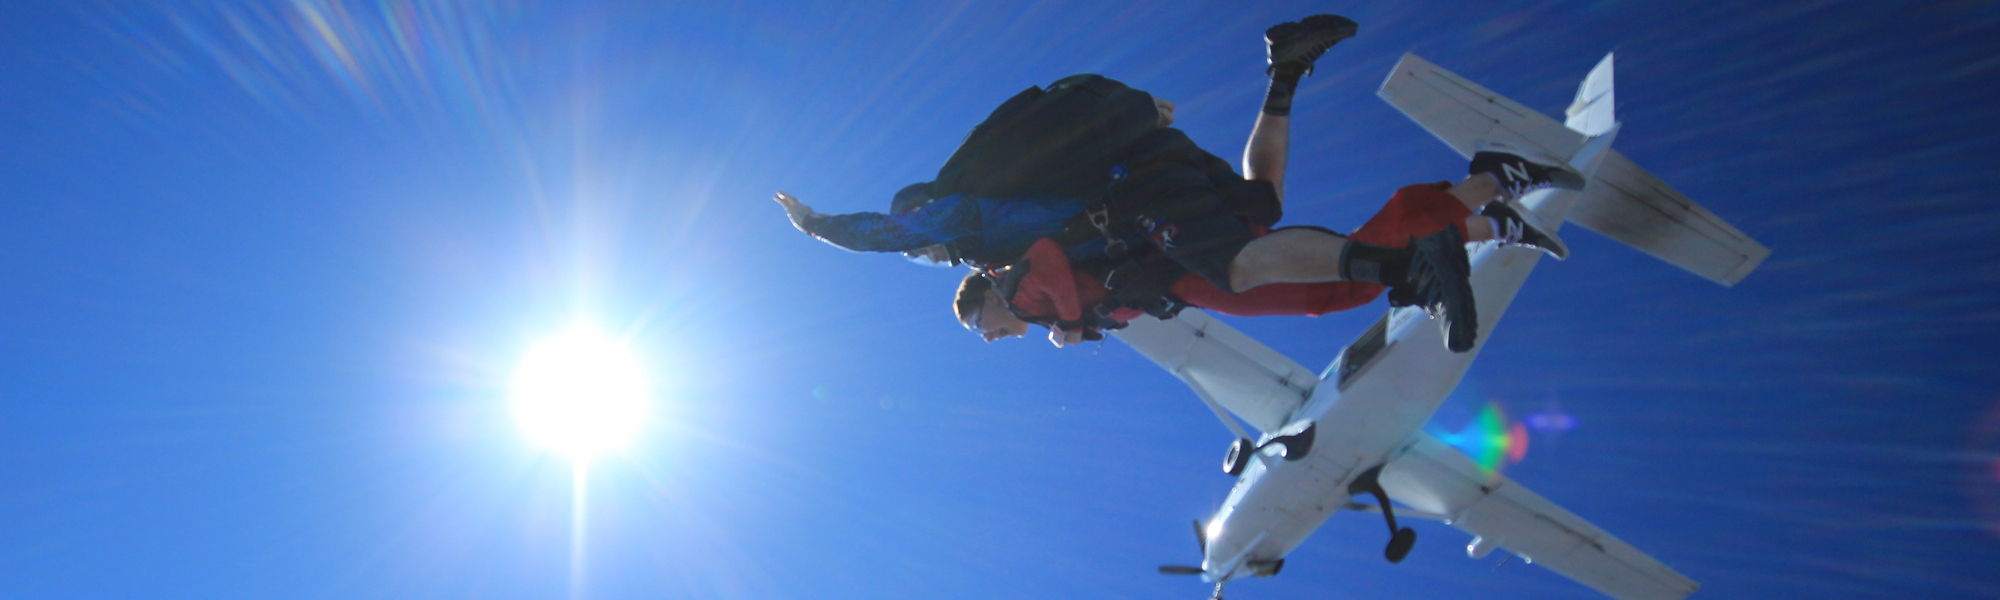 Tandem Skydiving: Common Questions – Skydive Spaceland Houston